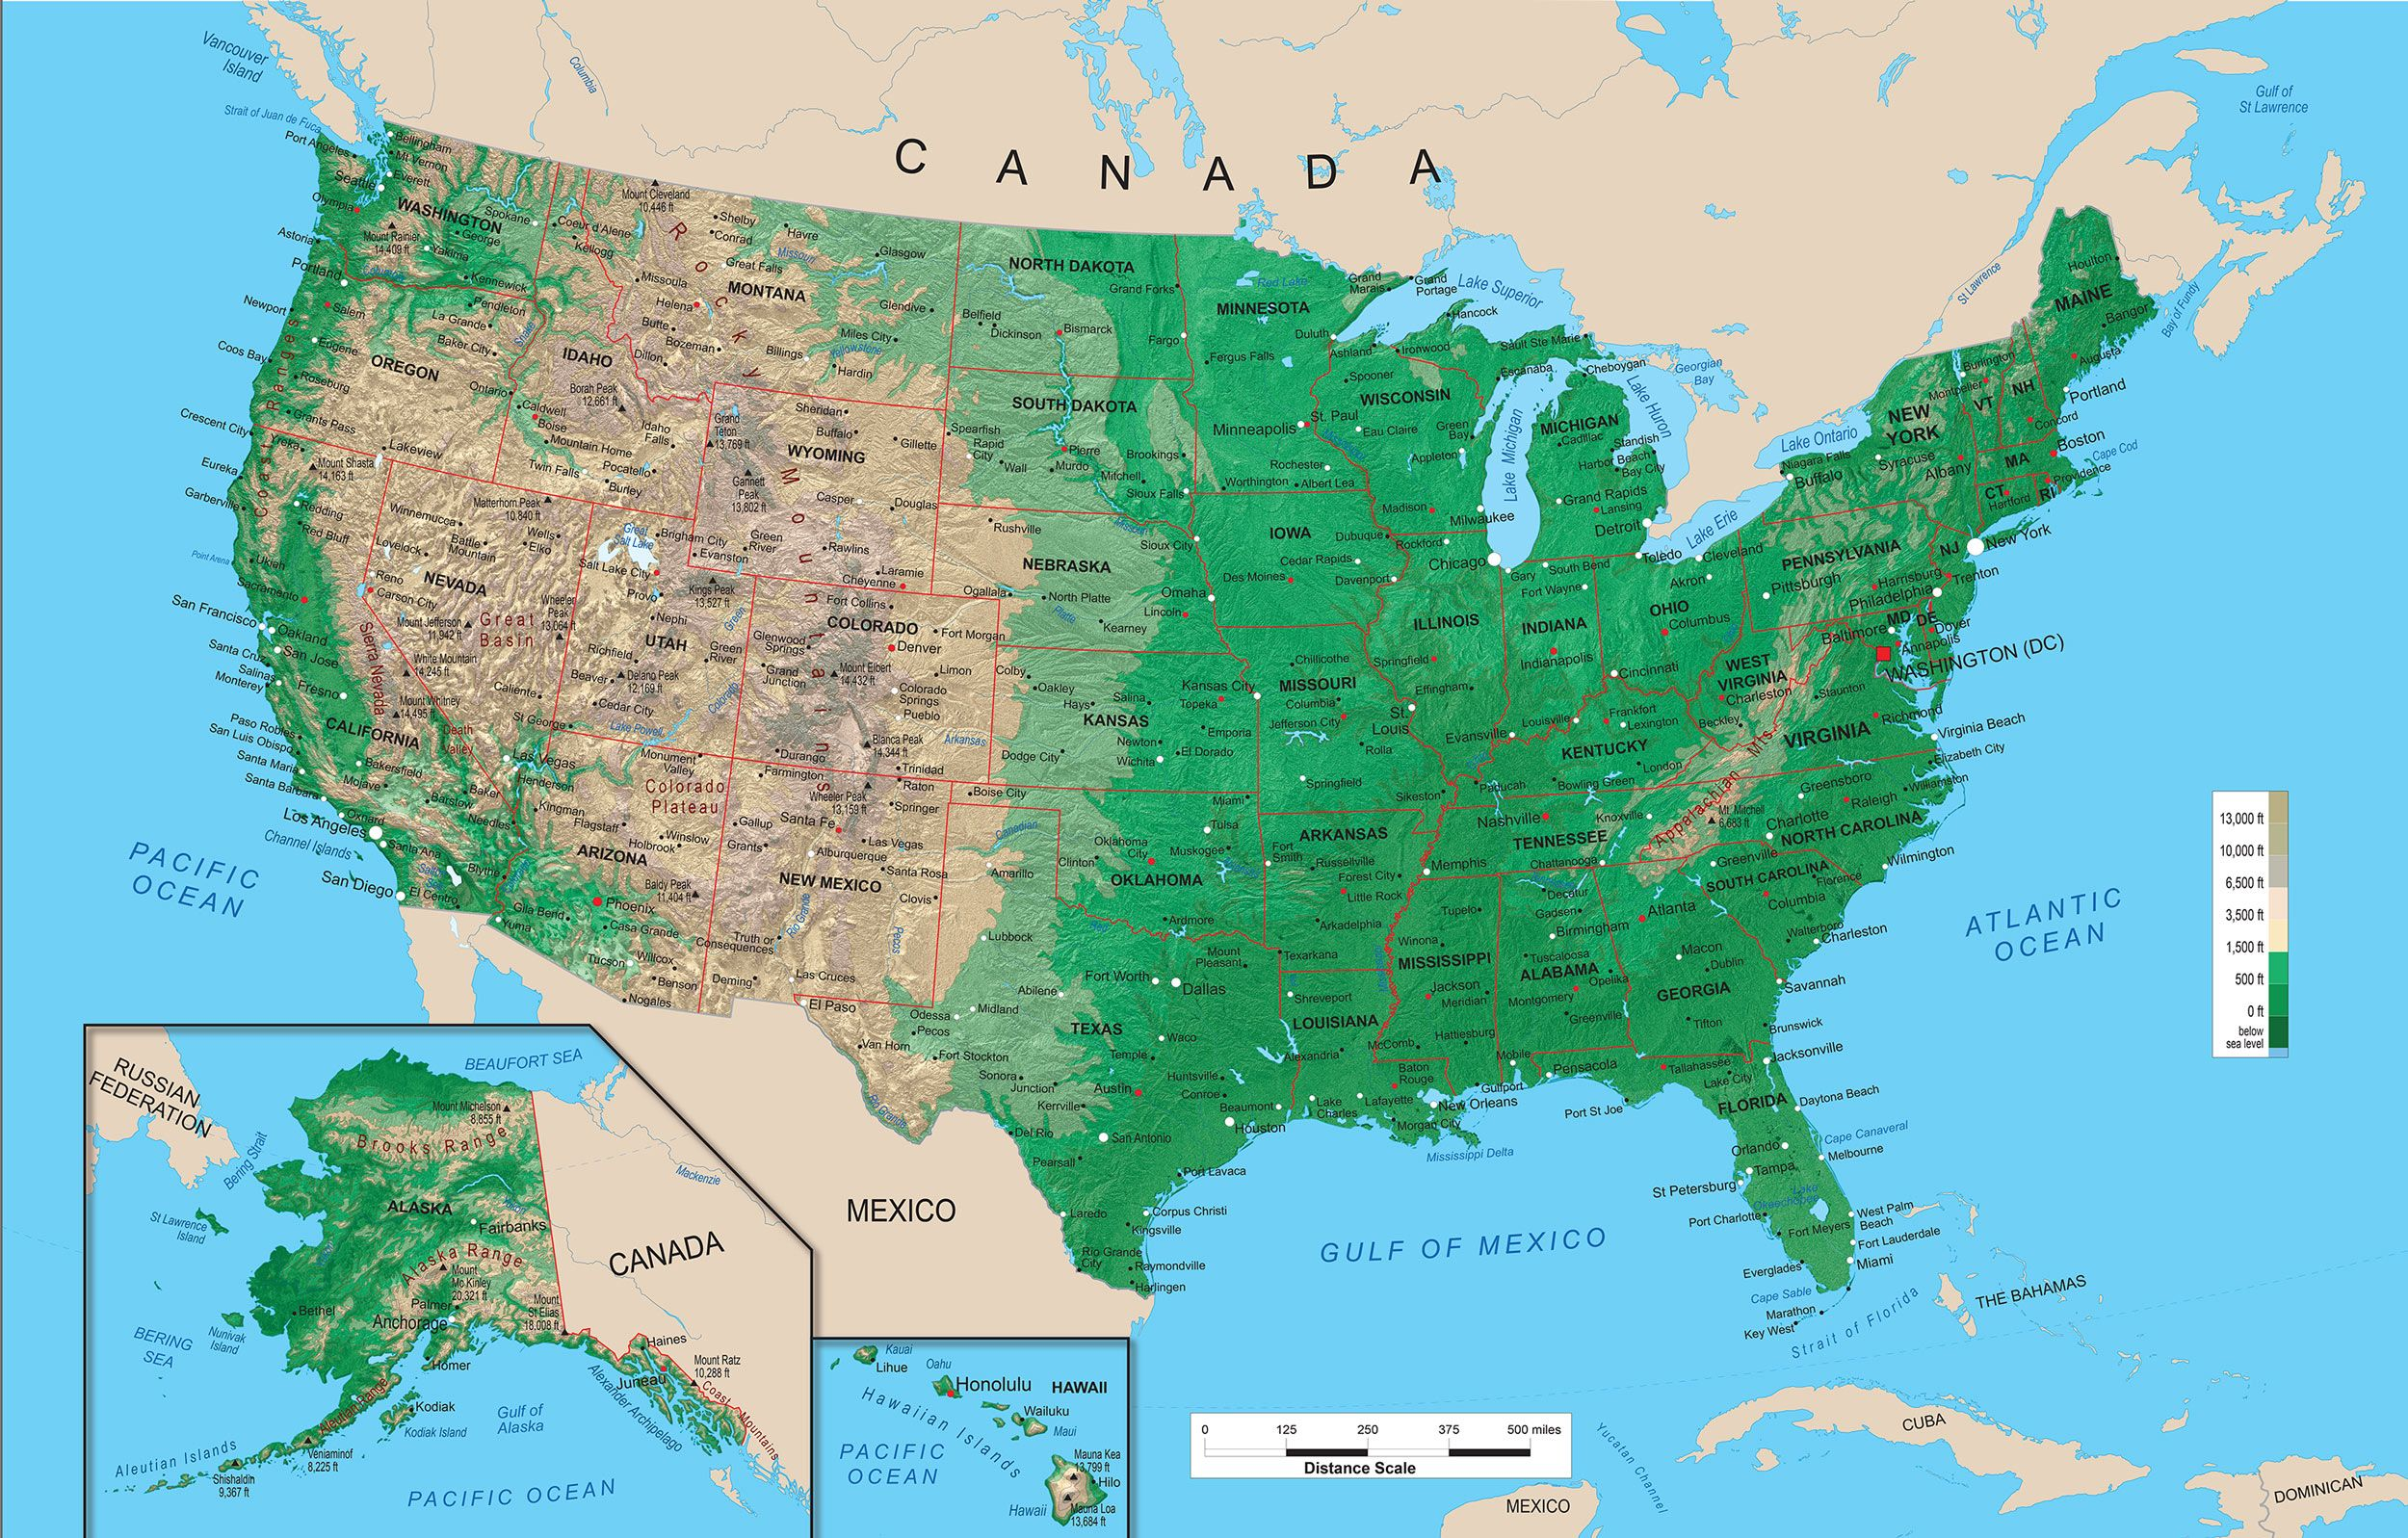 Highest Mountain and Peaks in each of the US States Profiles the